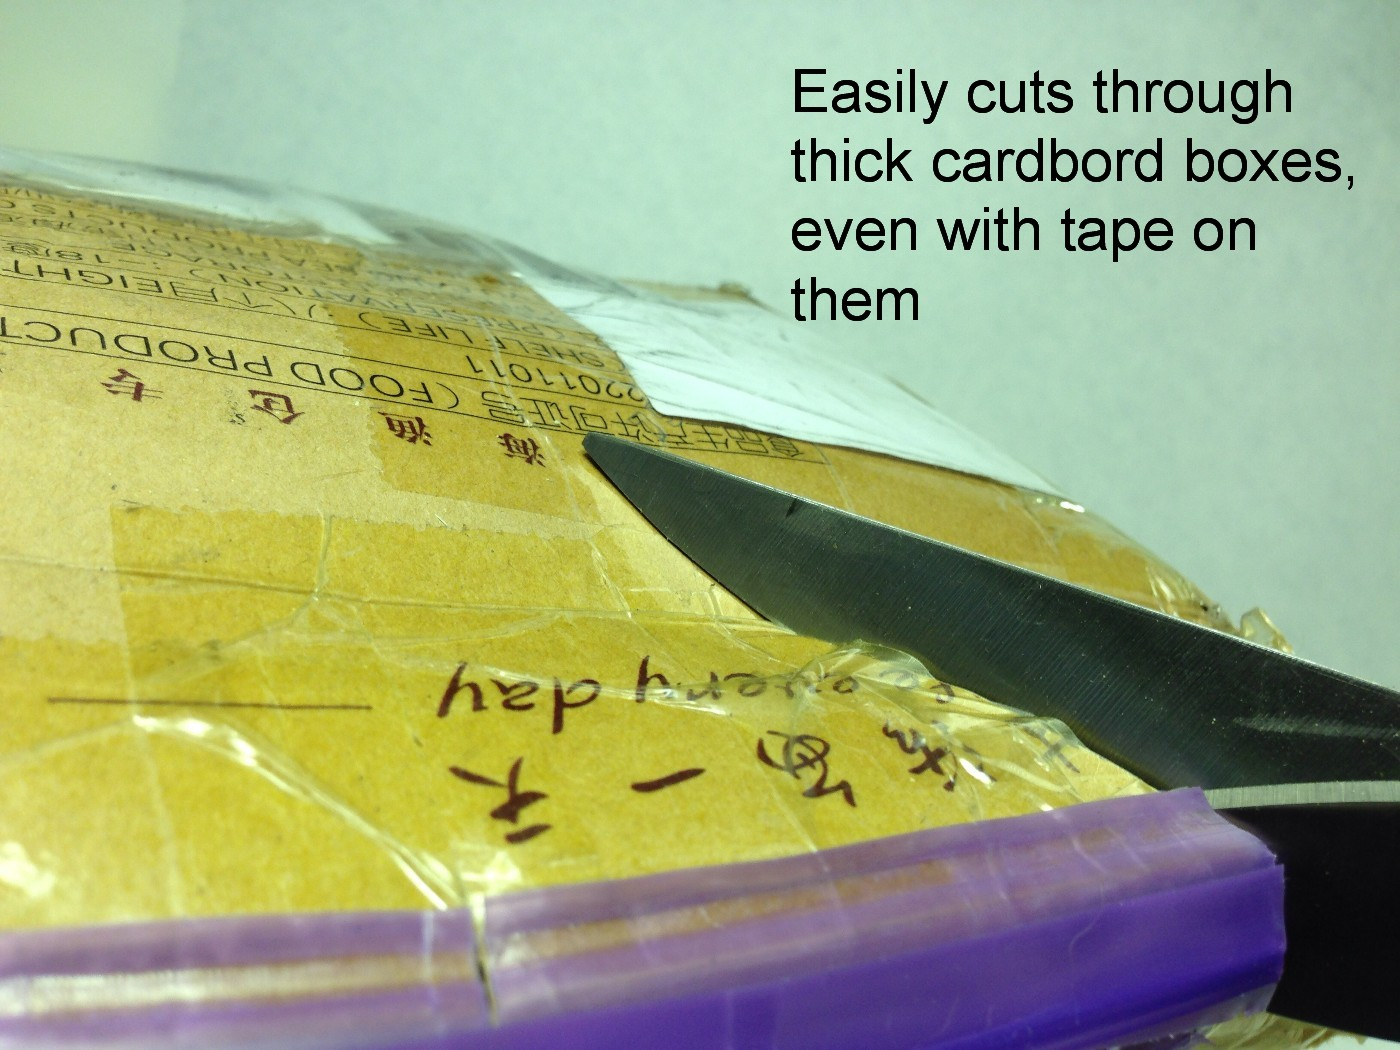 Heirloom Culinary Kitchen Shears Cutting Thick Boxes